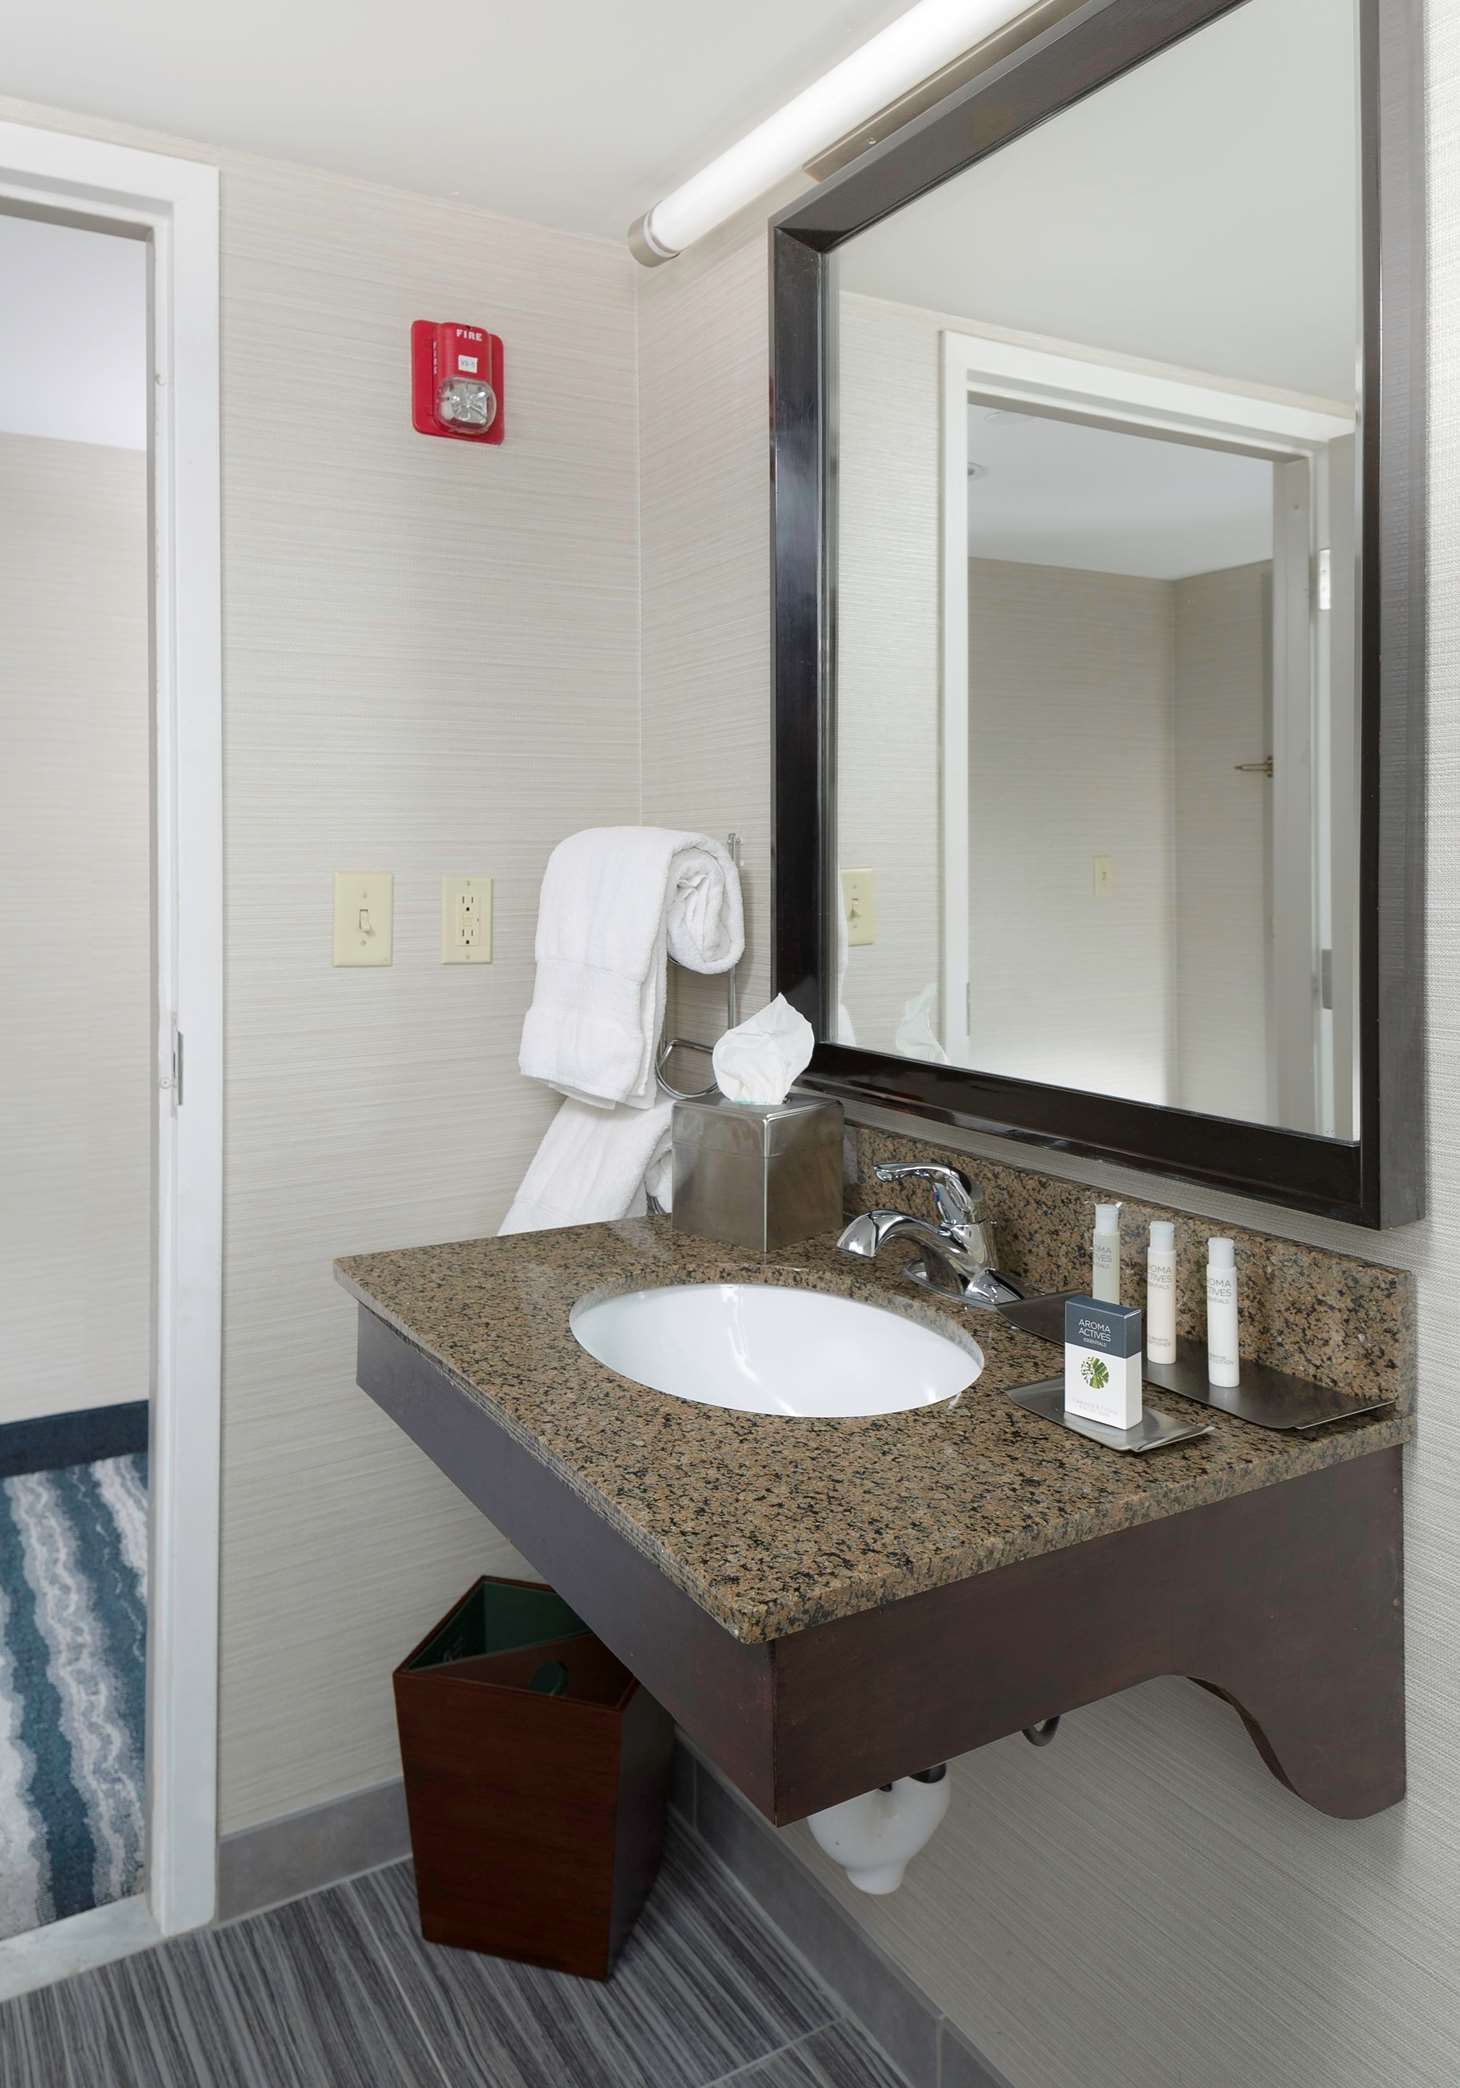 DoubleTree by Hilton Hotel Wilmington image 36